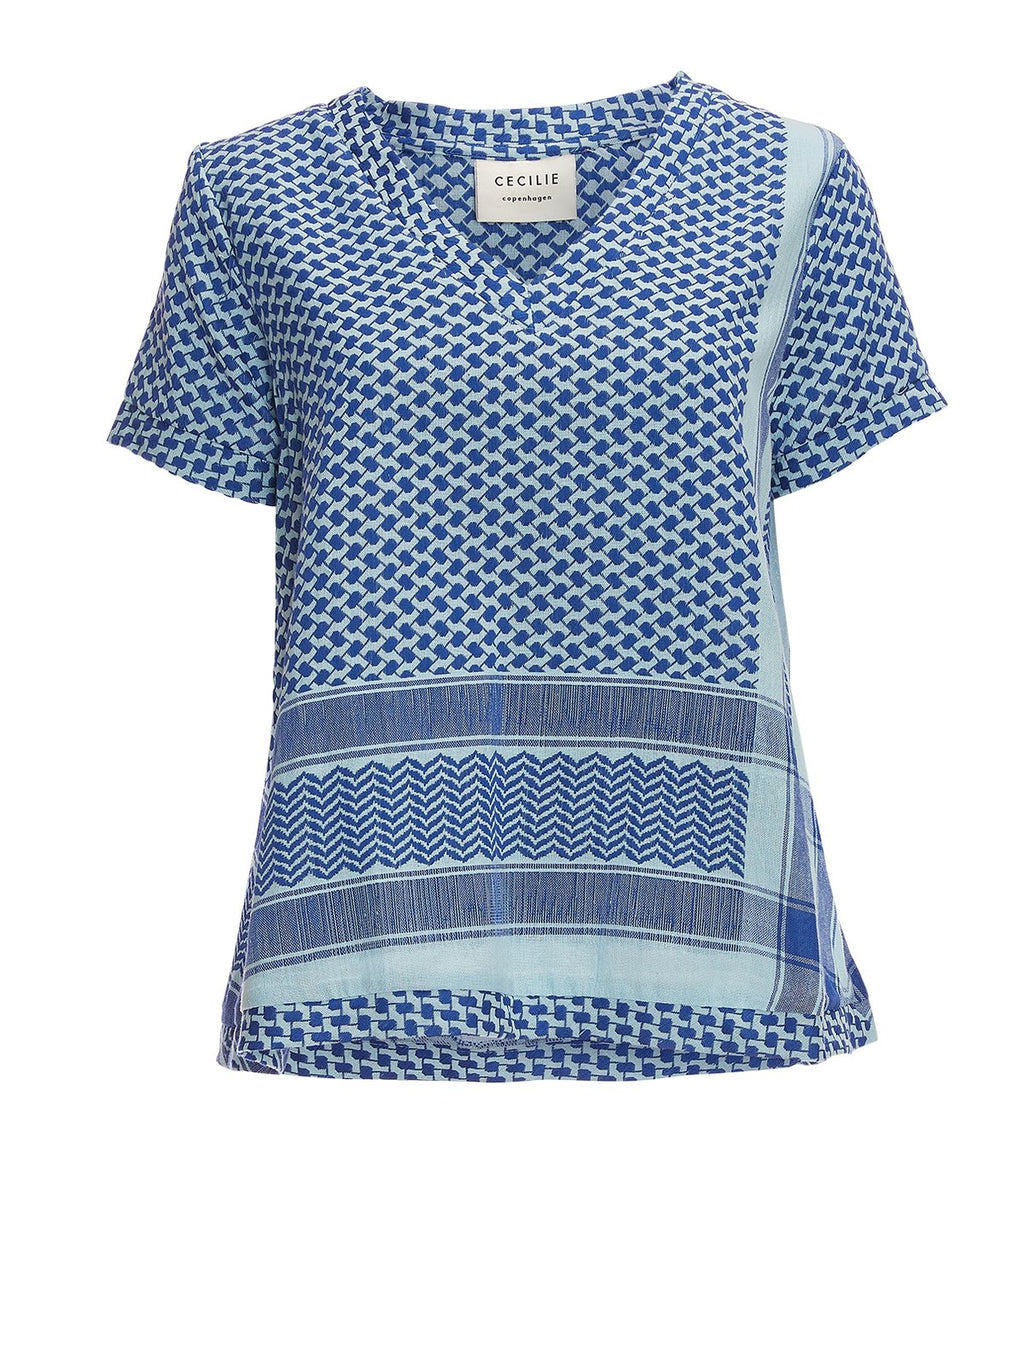 CECILIE COPENHAGEN - Shirt V neck short sleeves online at PAYA boutique